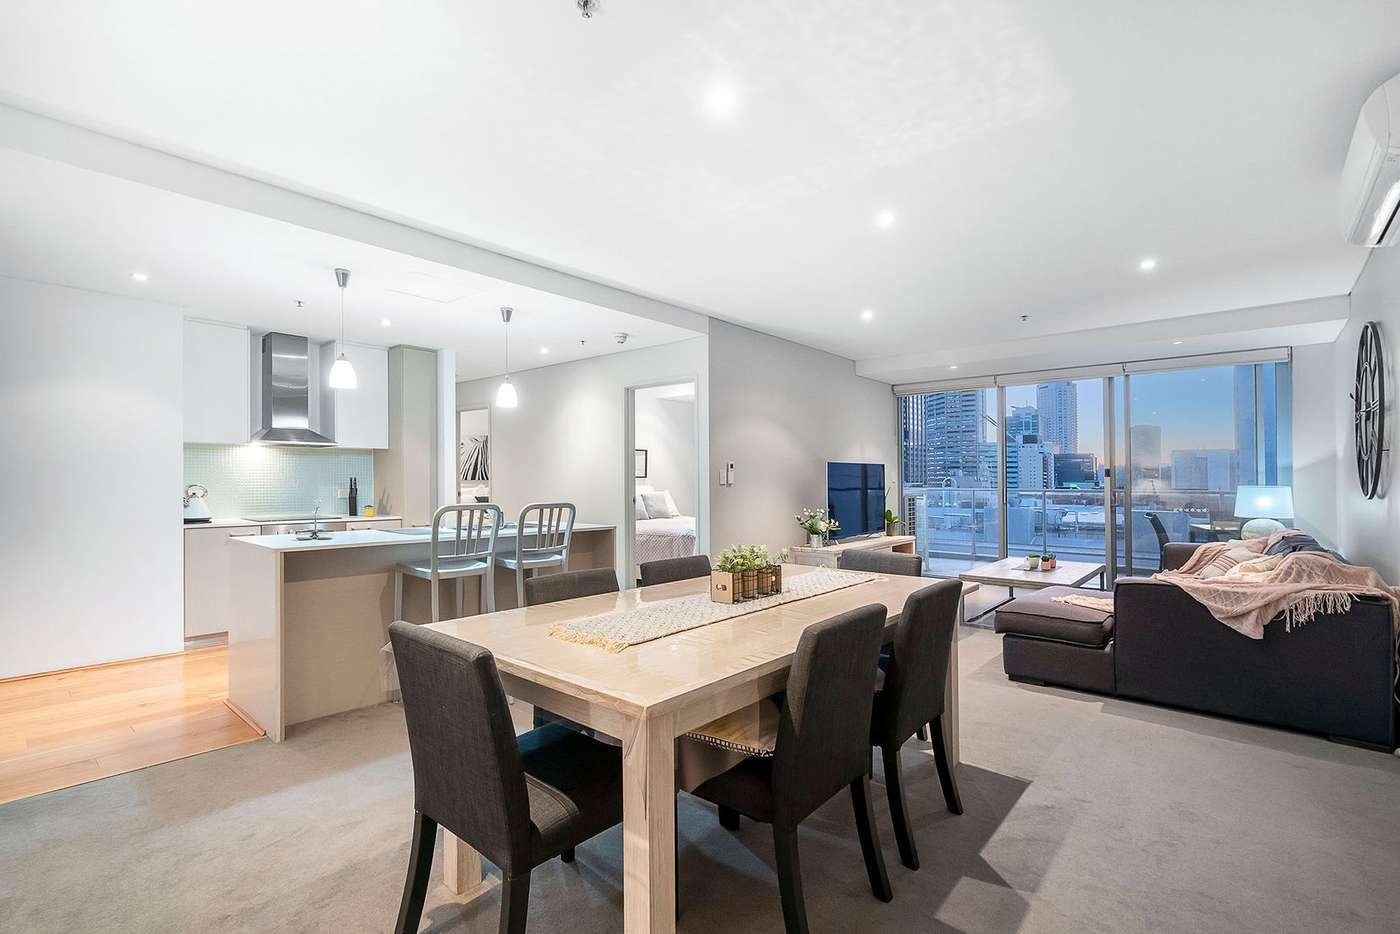 Main view of Homely apartment listing, 16/580 Hay Street, Perth WA 6000